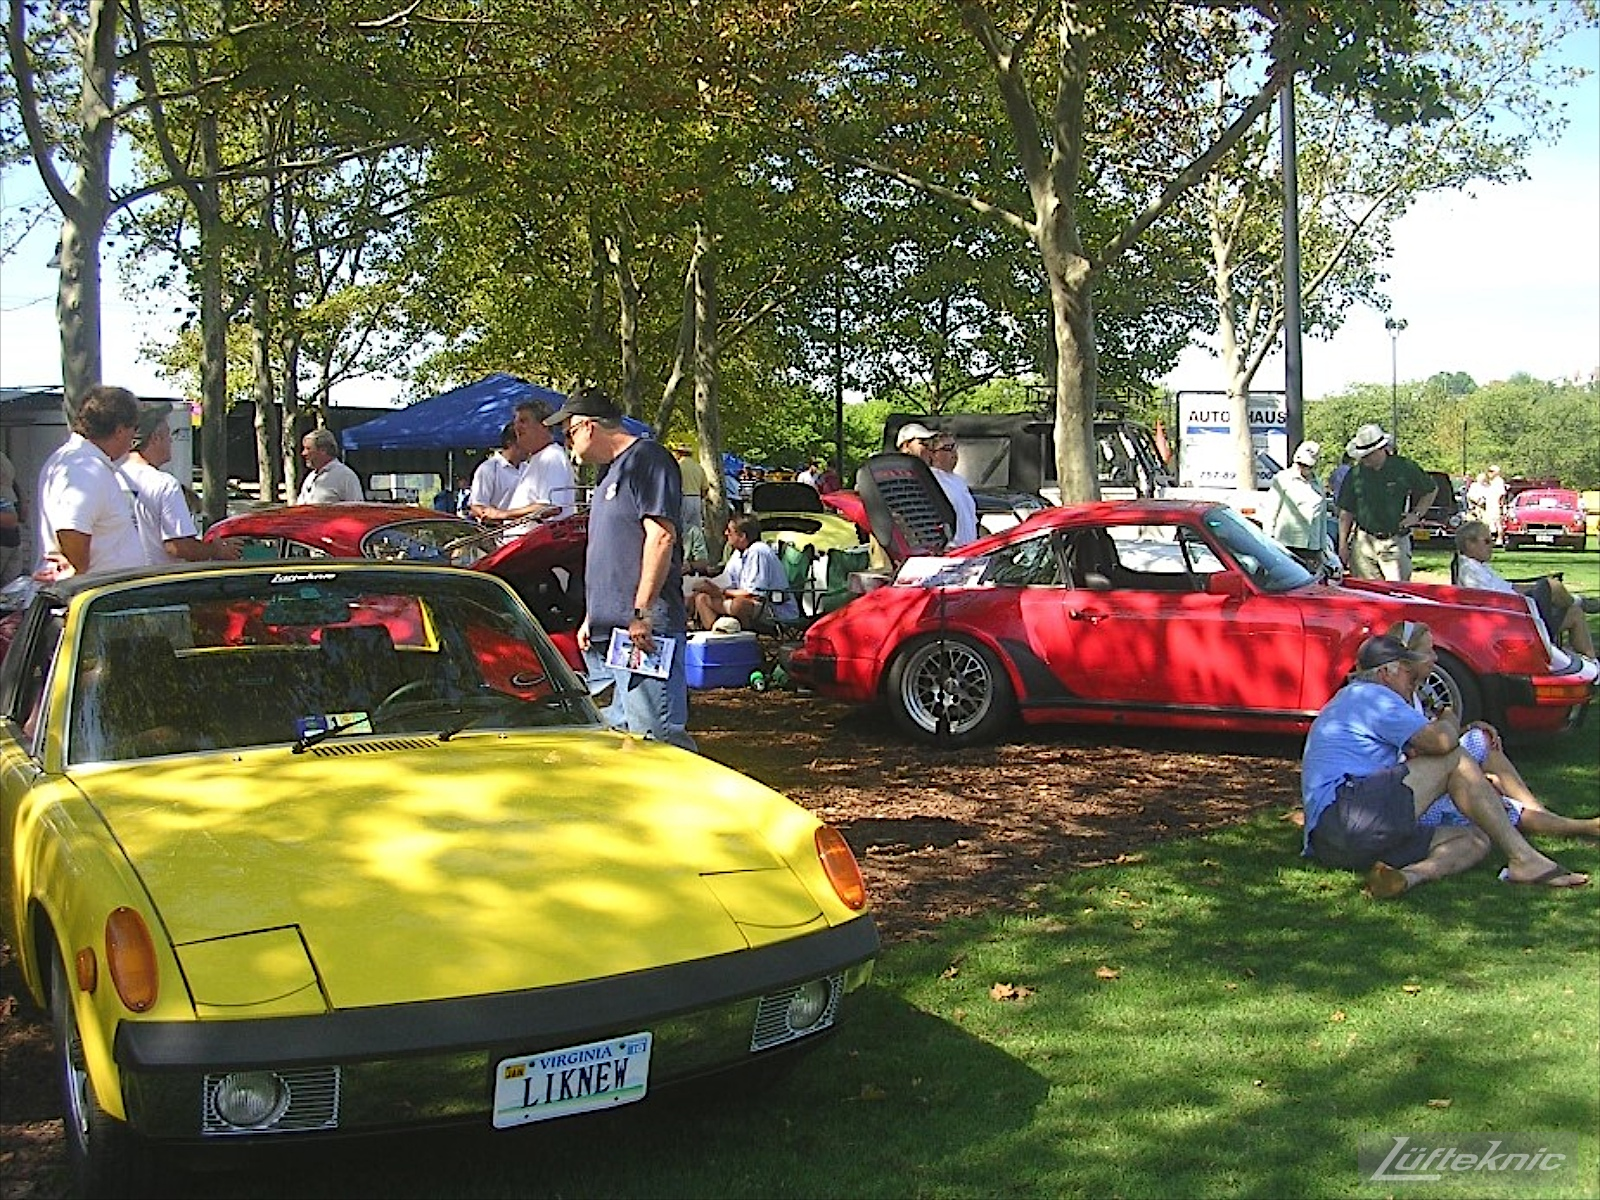 A restored yellow Porsche 914 on display with other Porsches at a car show.